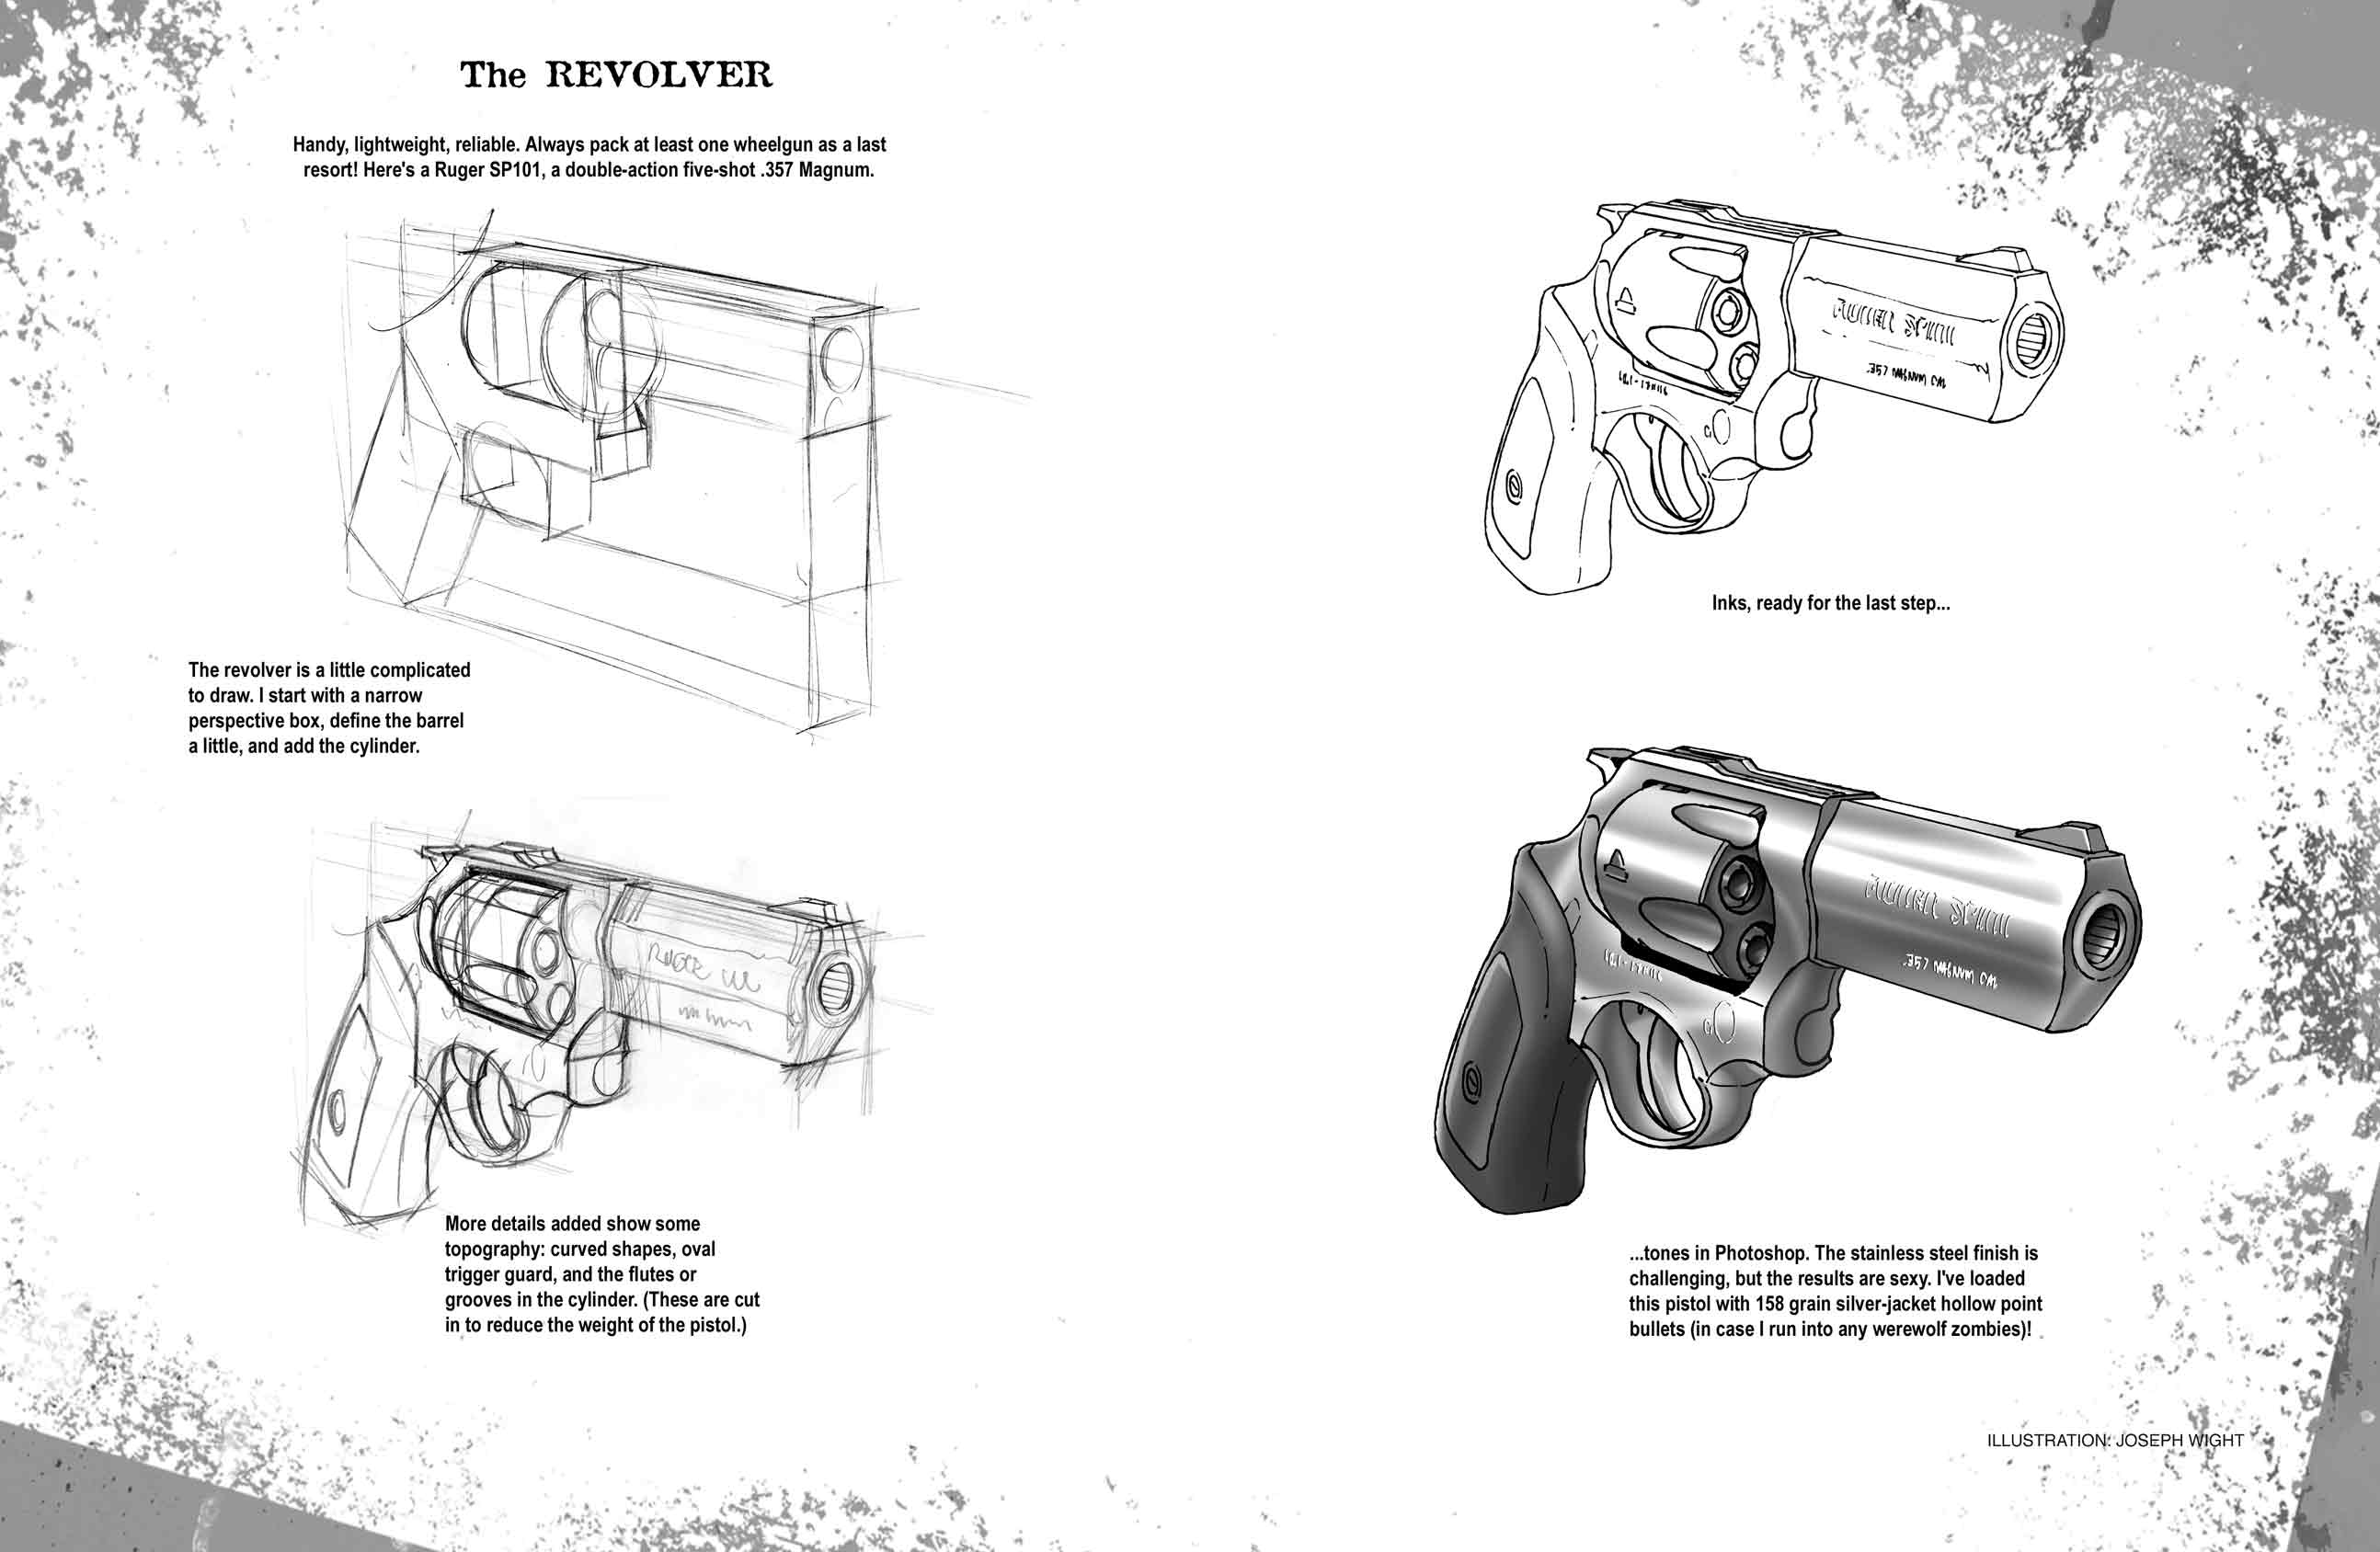 How To Zombie Ruger by joewight